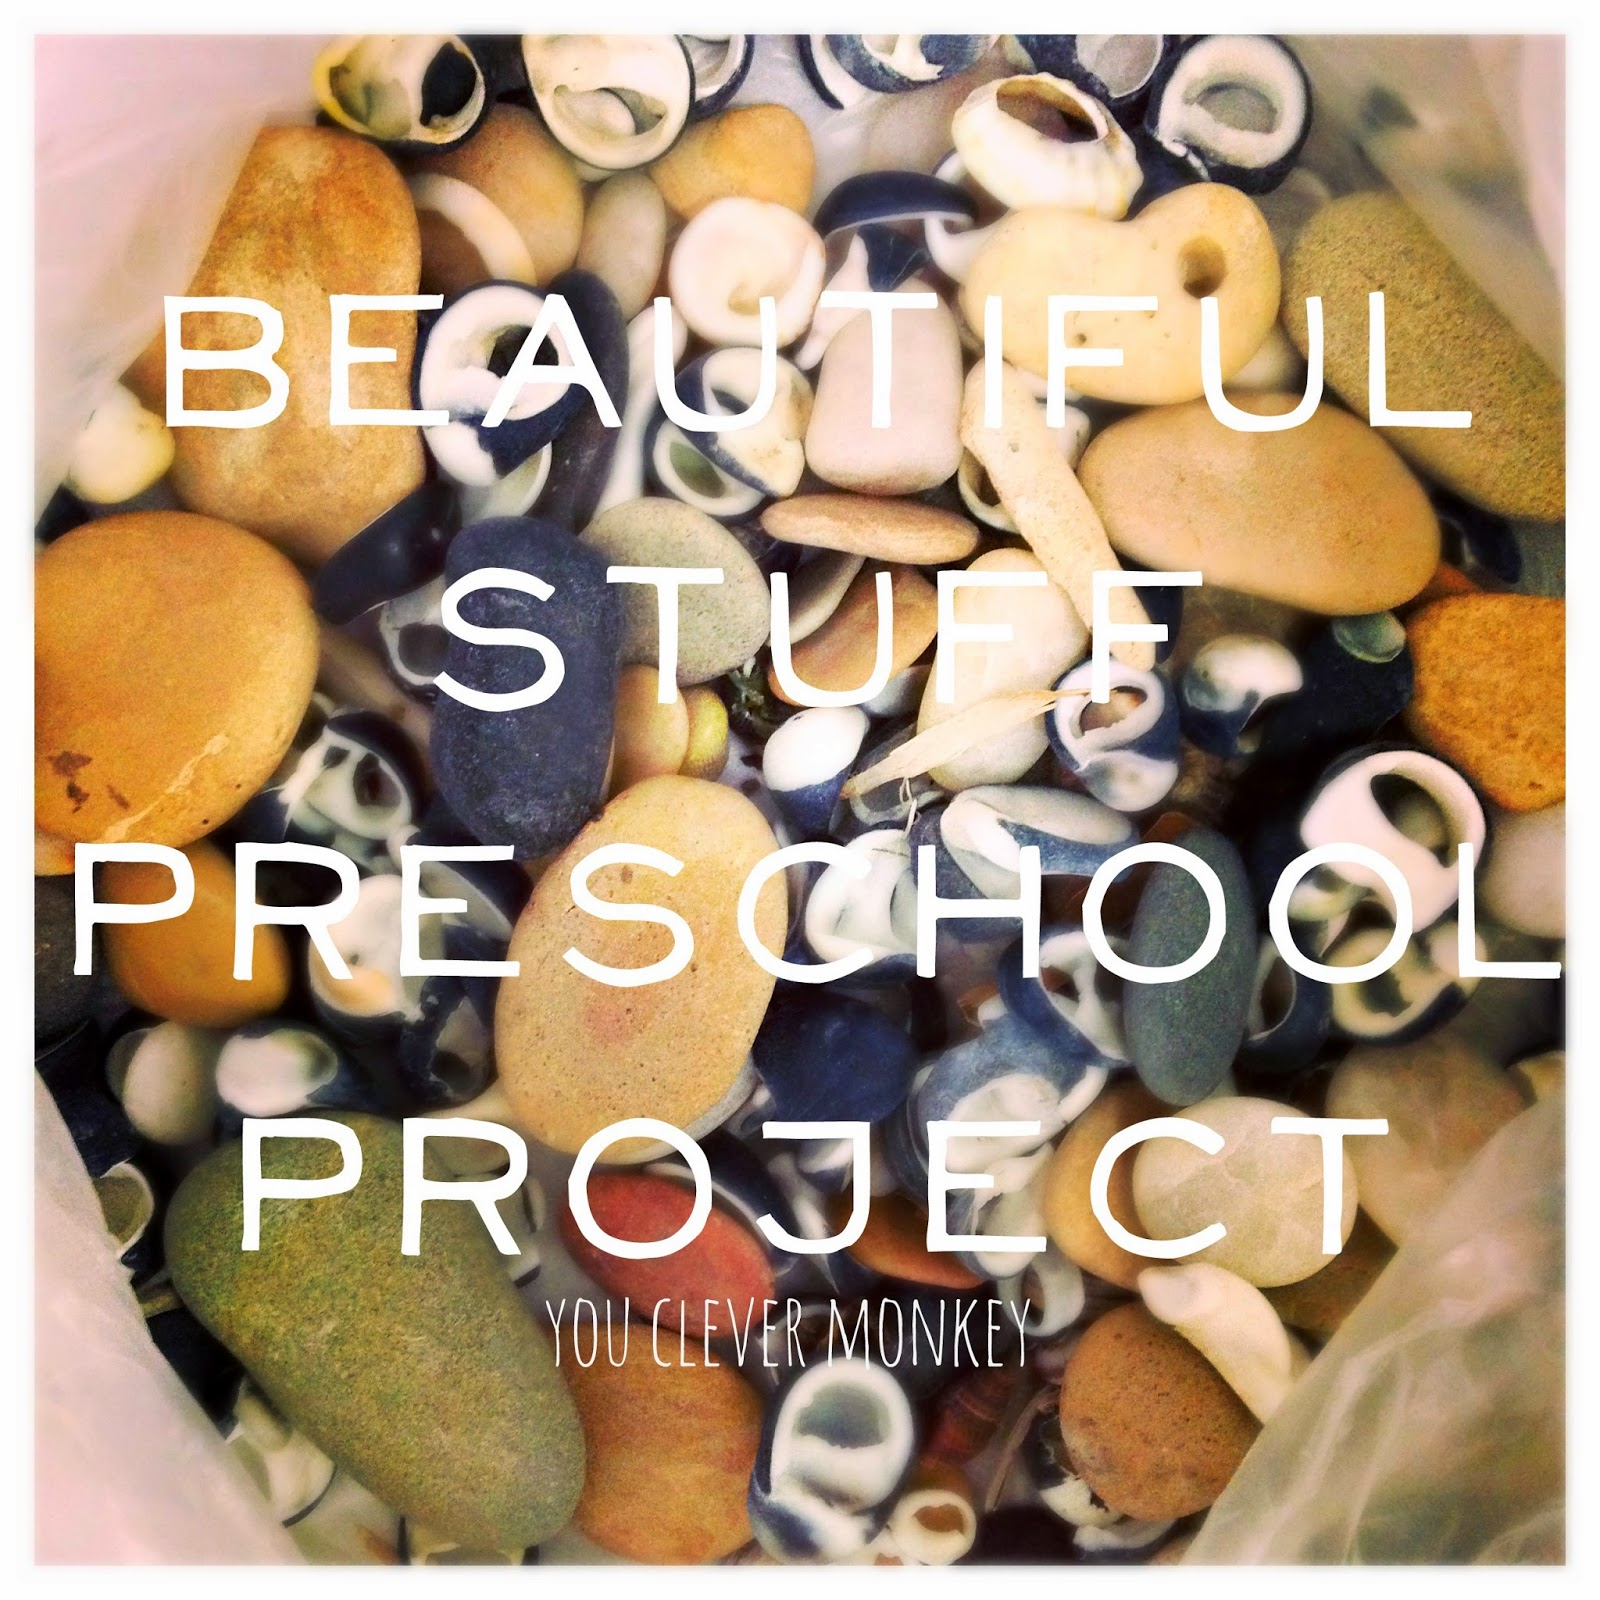 Beautiful stuff preschool project.  Find more information at http://youclevermonkey.com